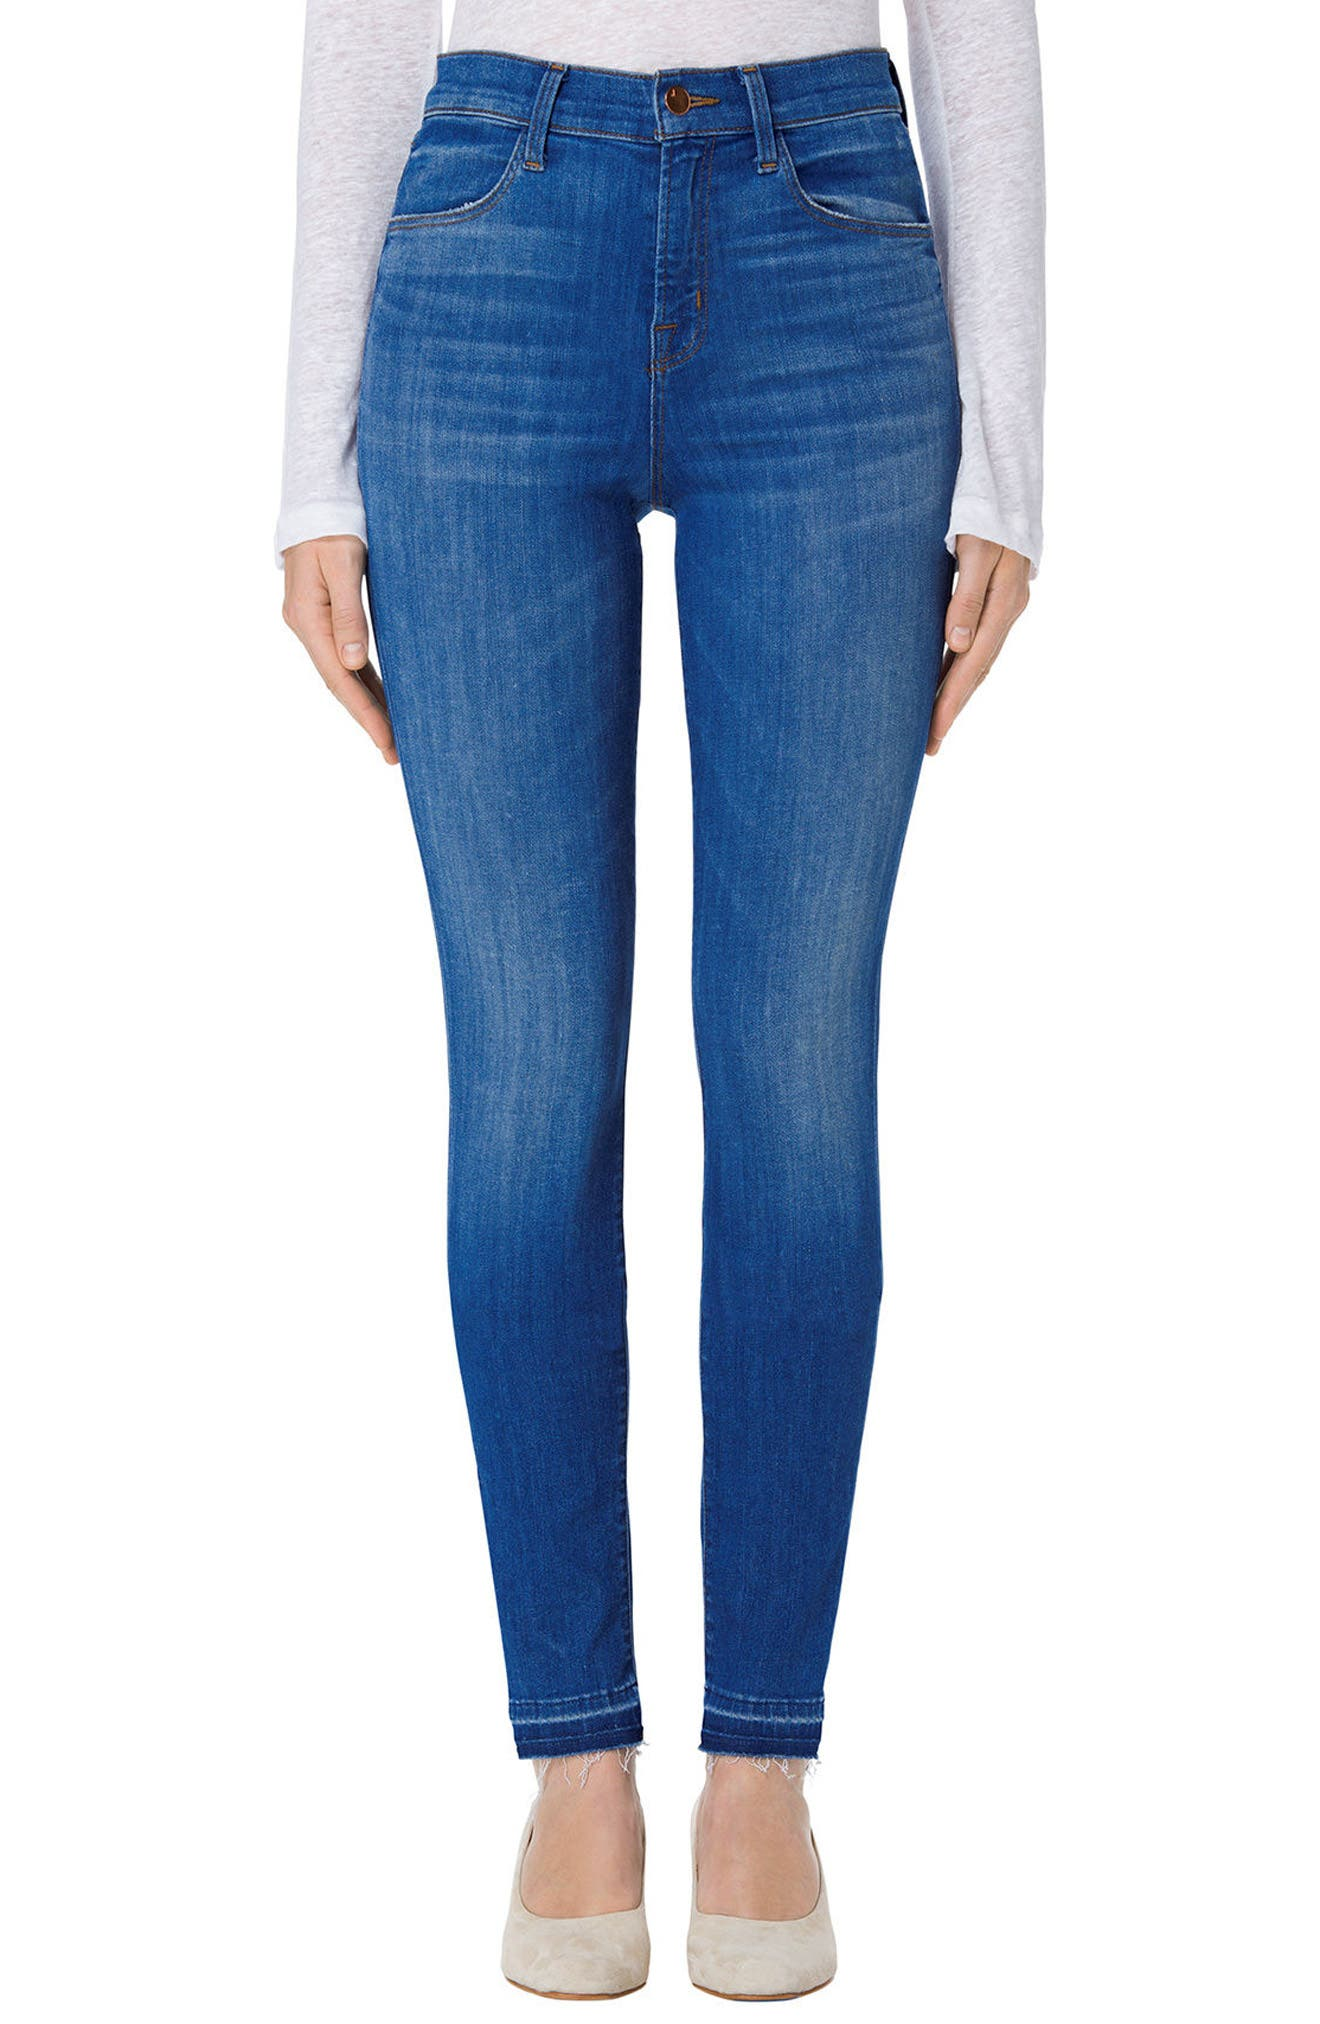 Alternate Image 1 Selected - J Brand Maria High Waist Skinny Jeans (Angelic)